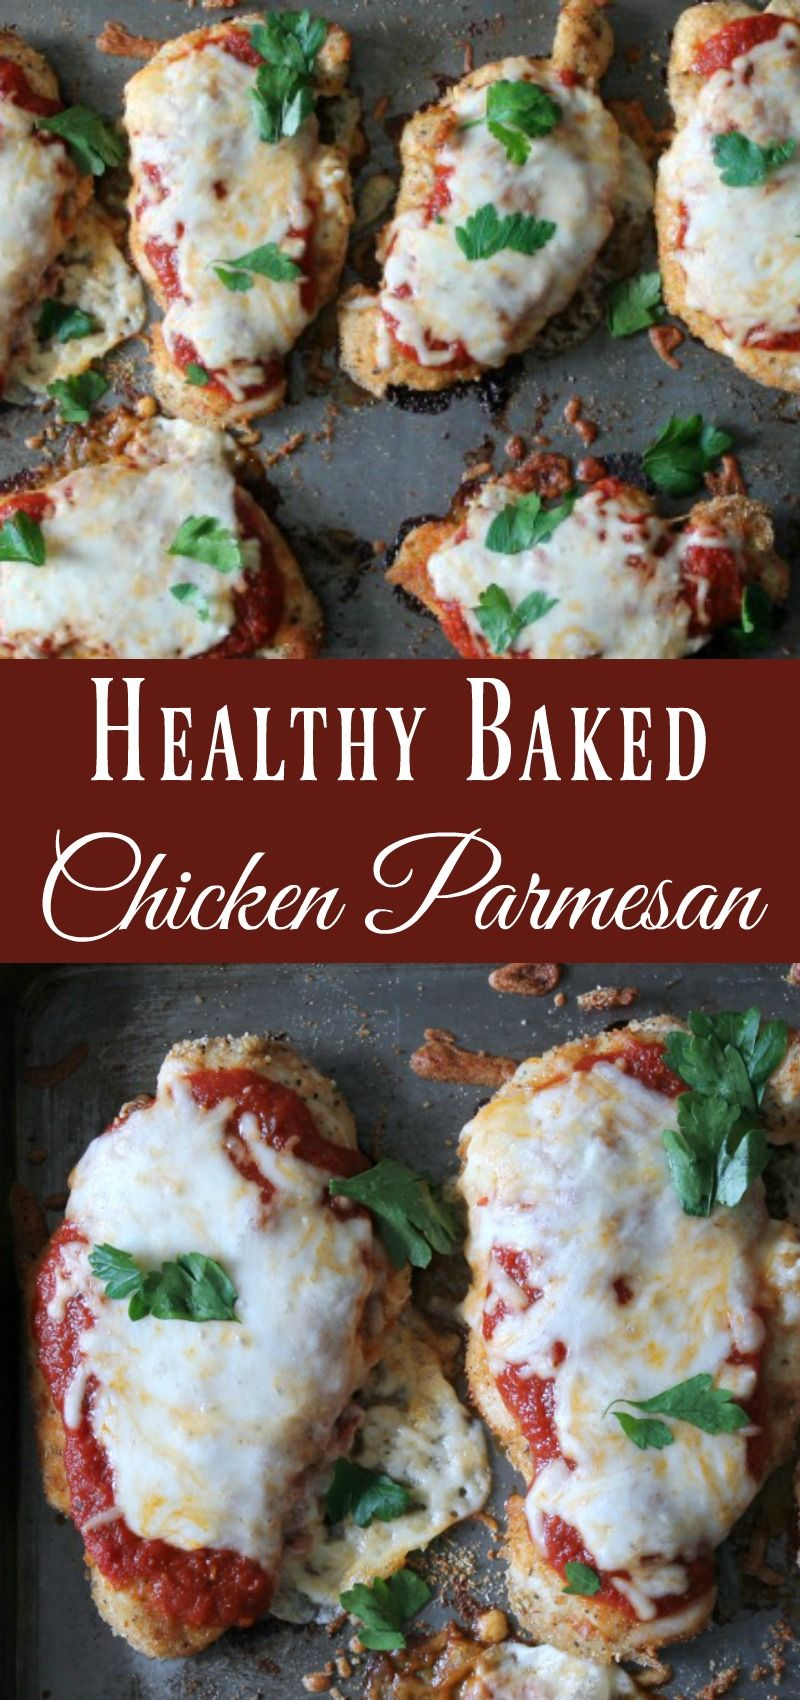 Healthy Baked Chicken Parmesan Recipe Healthy Recipes